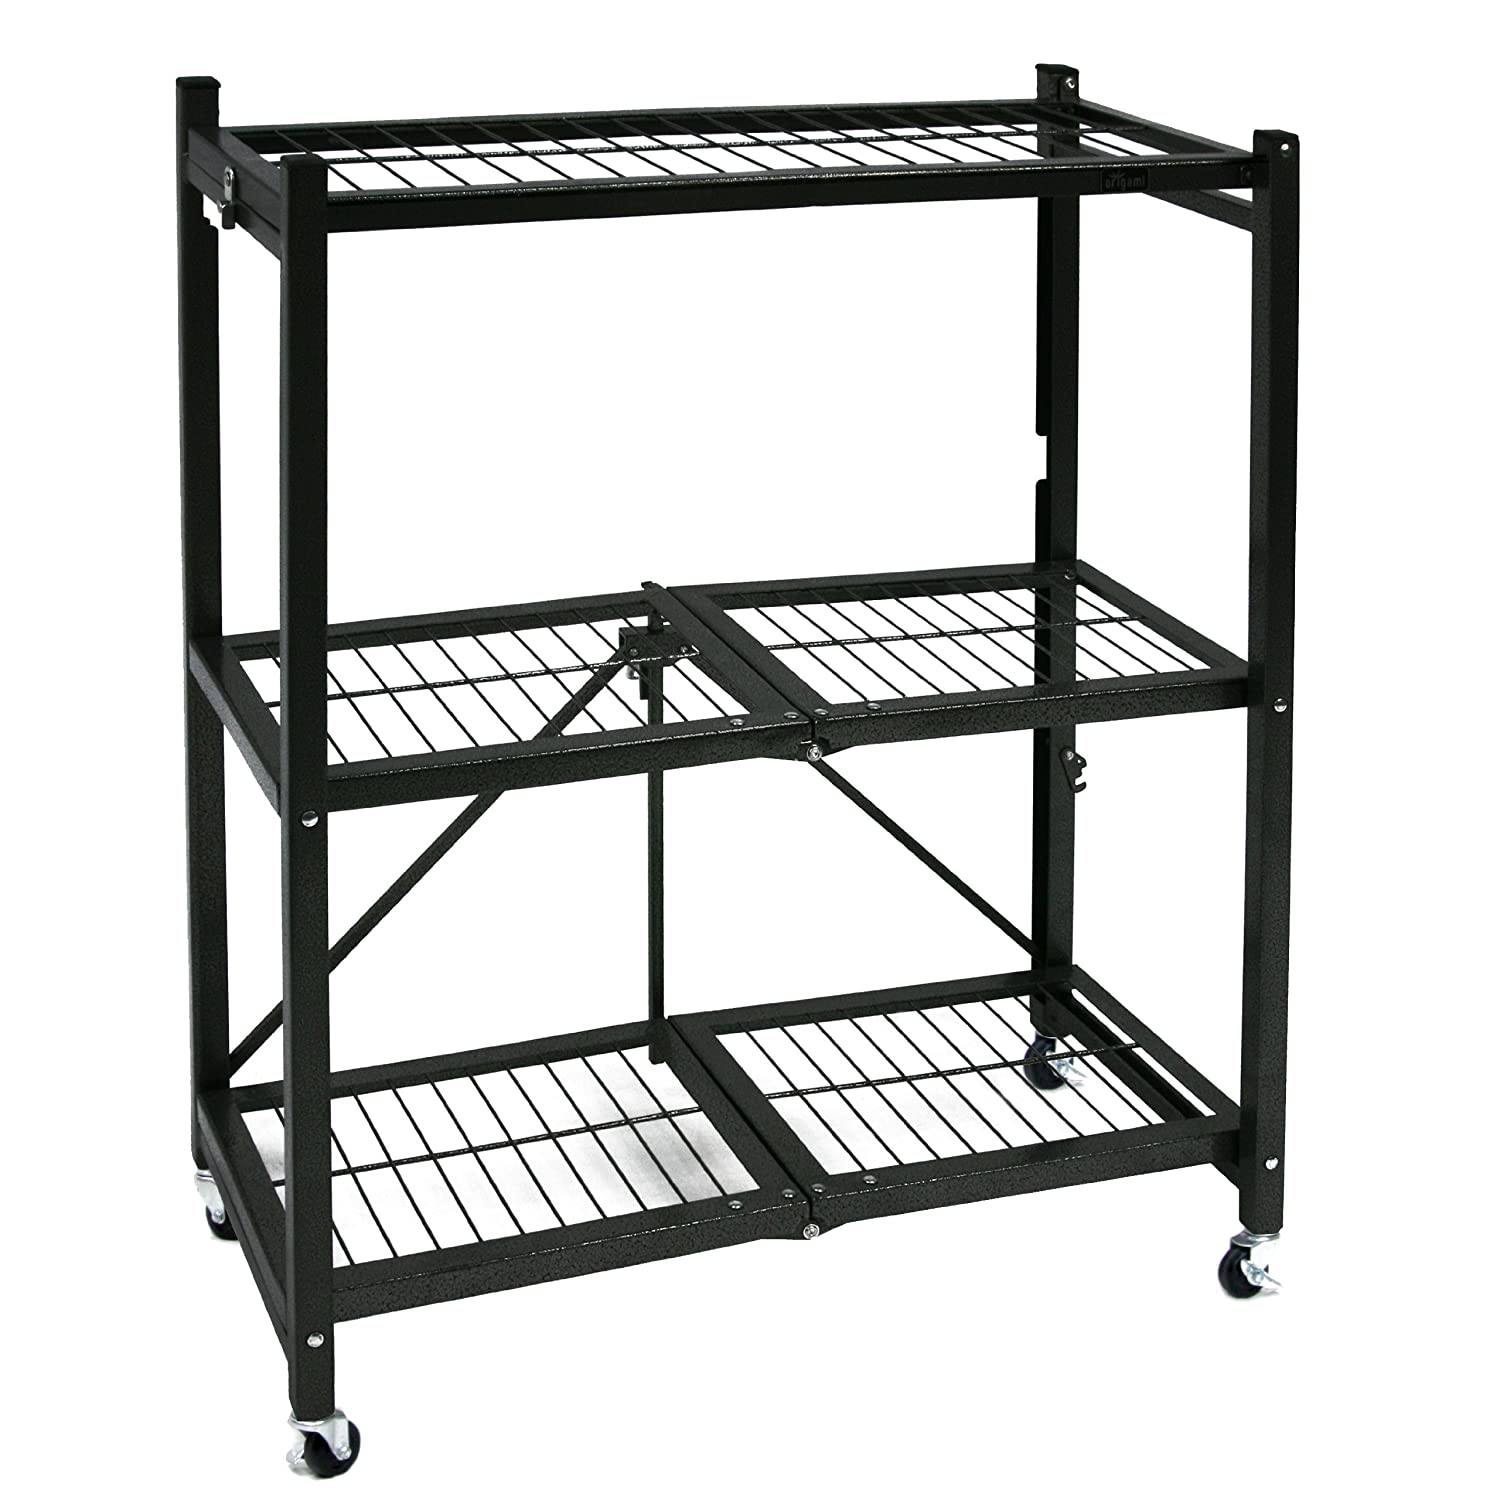 Amazon.com: Origami General Purpose Steel Storage Rack with Wheels ...